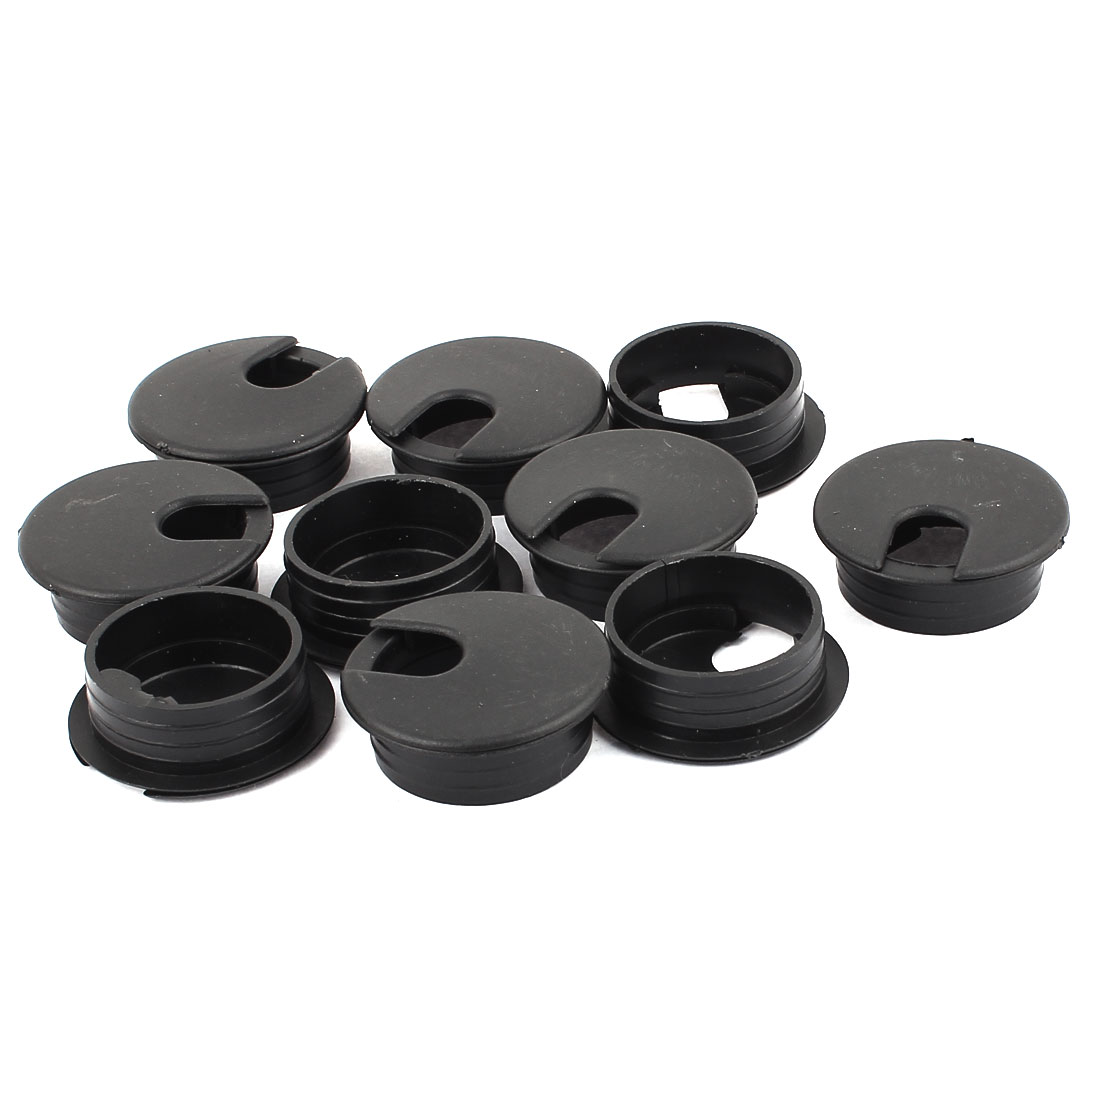 Office PC Computer Desk Table Plastic Grommet Cable Cord Hole Cap Cover Black 35mm Dia 10pcs